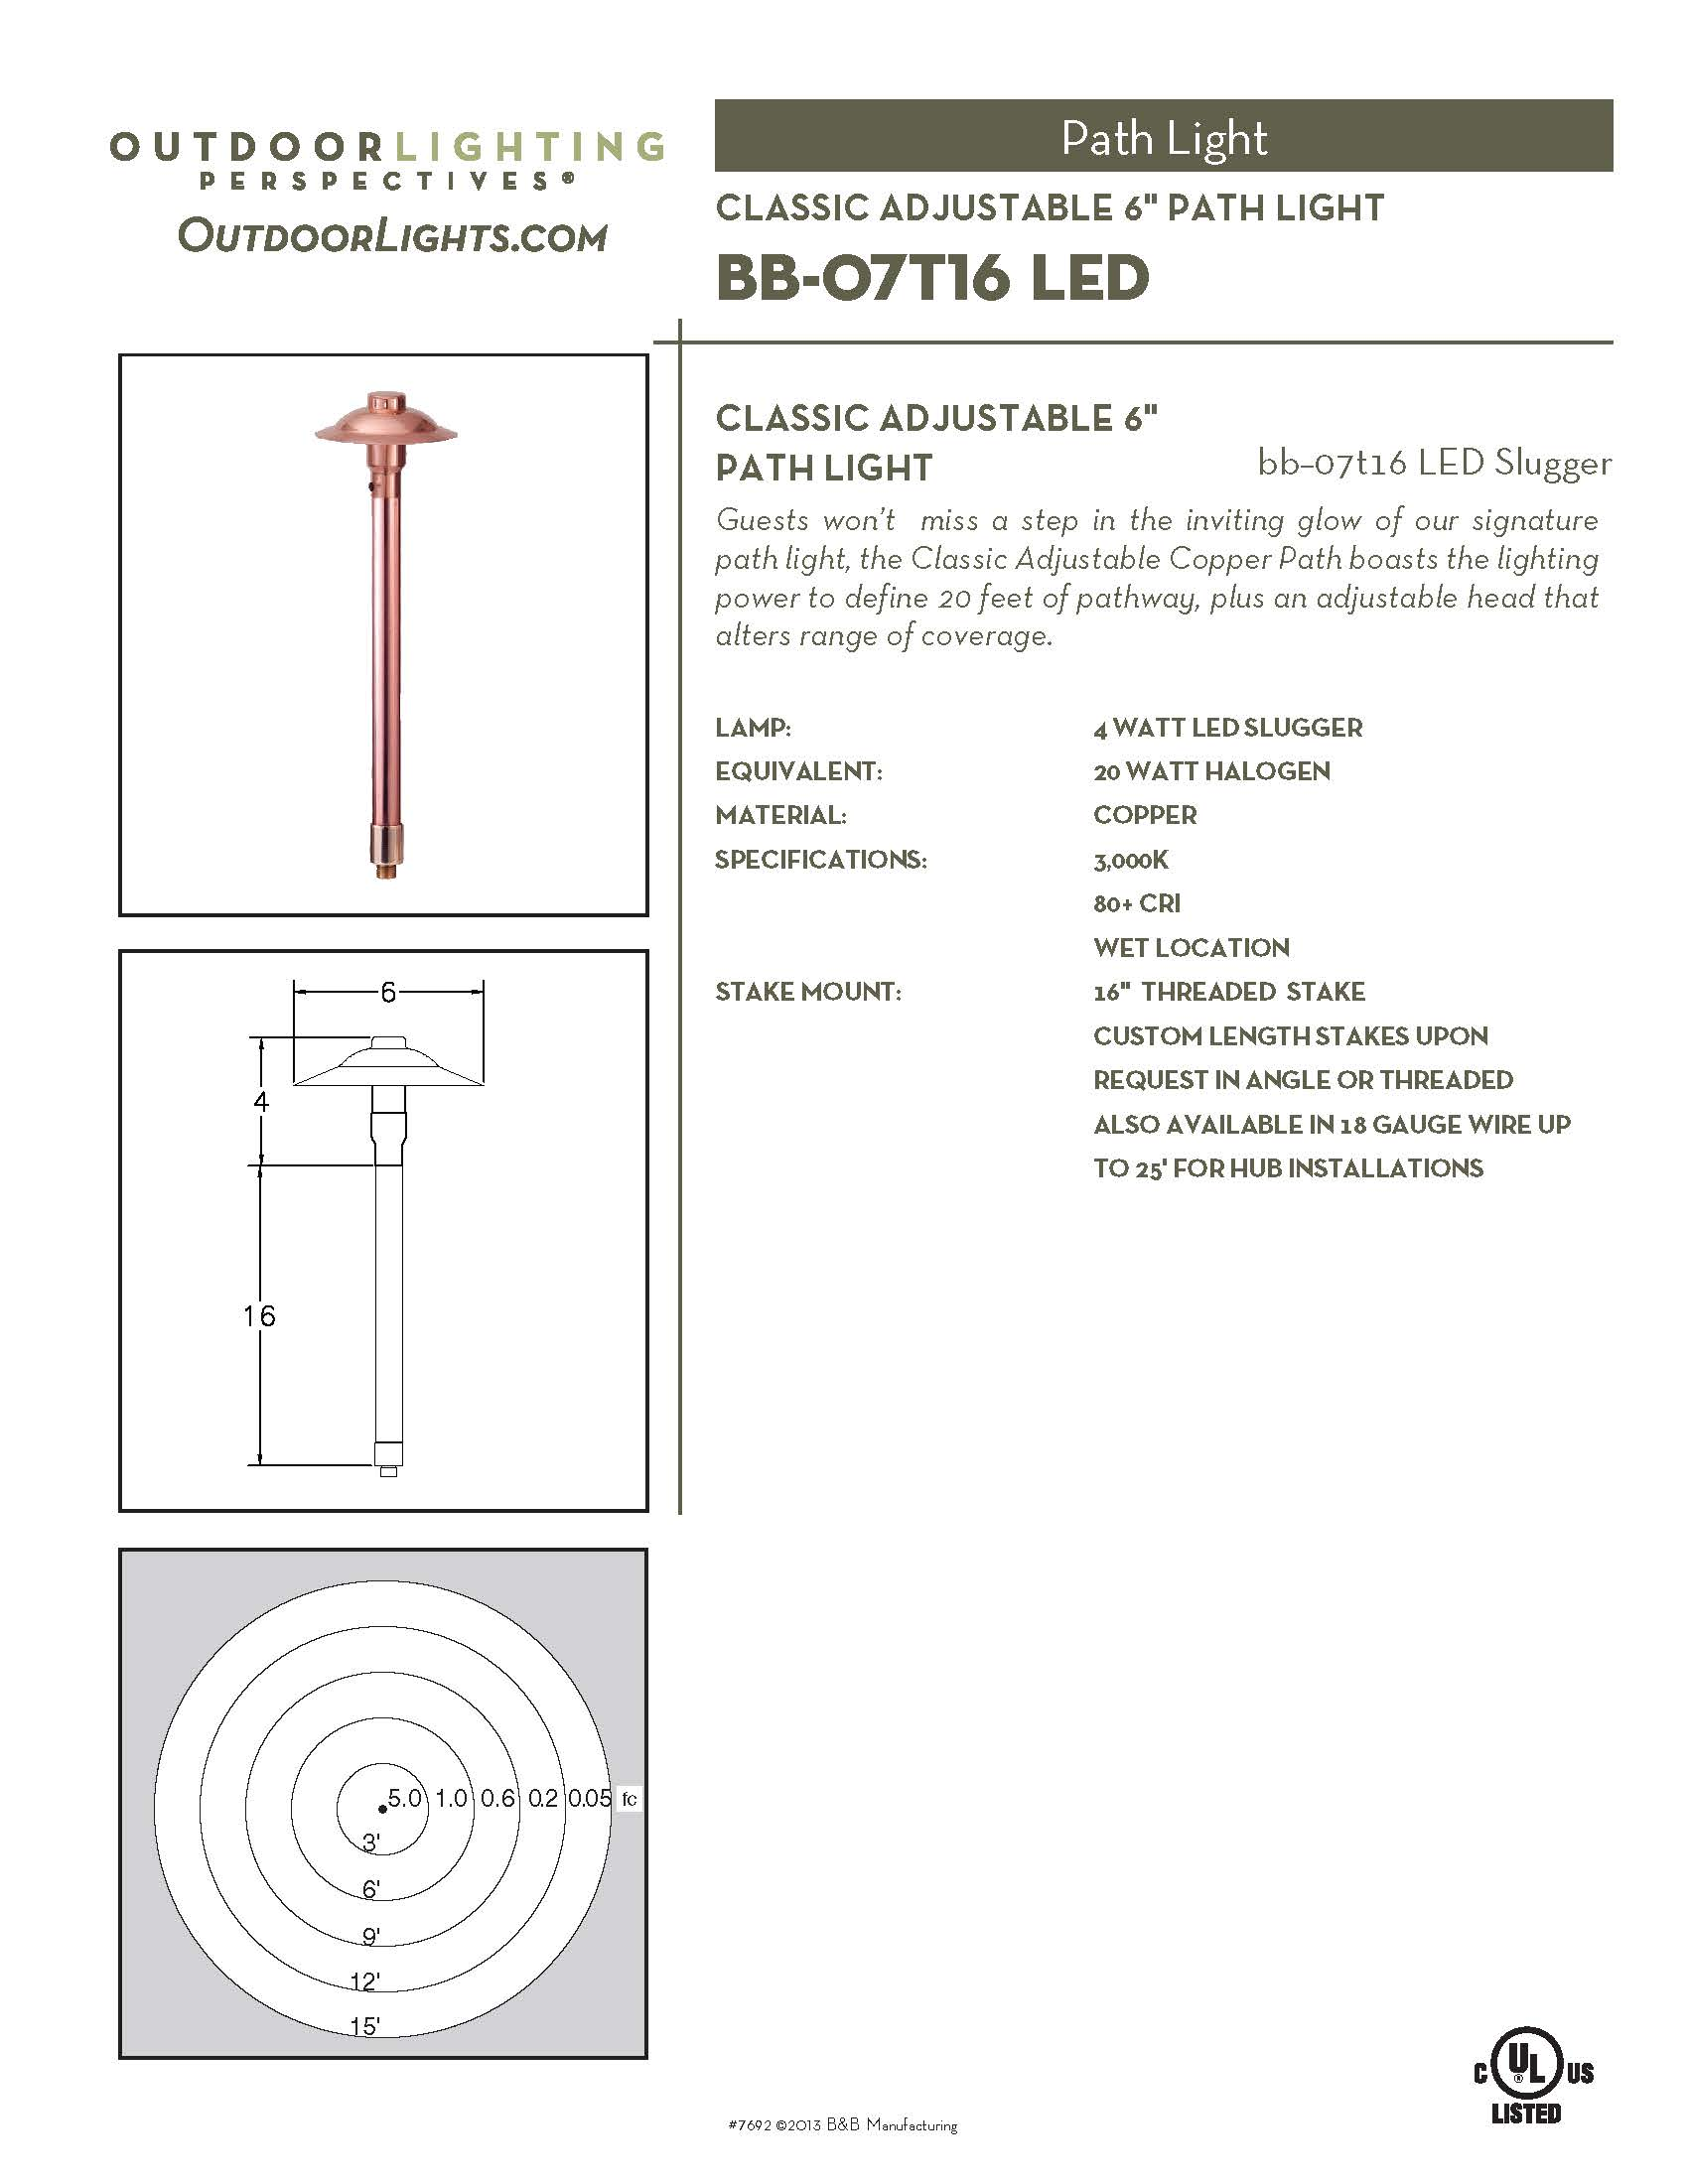 Outdoor lighting company lightscapes southern outdoor lighting - Bb 07t16 Slugger